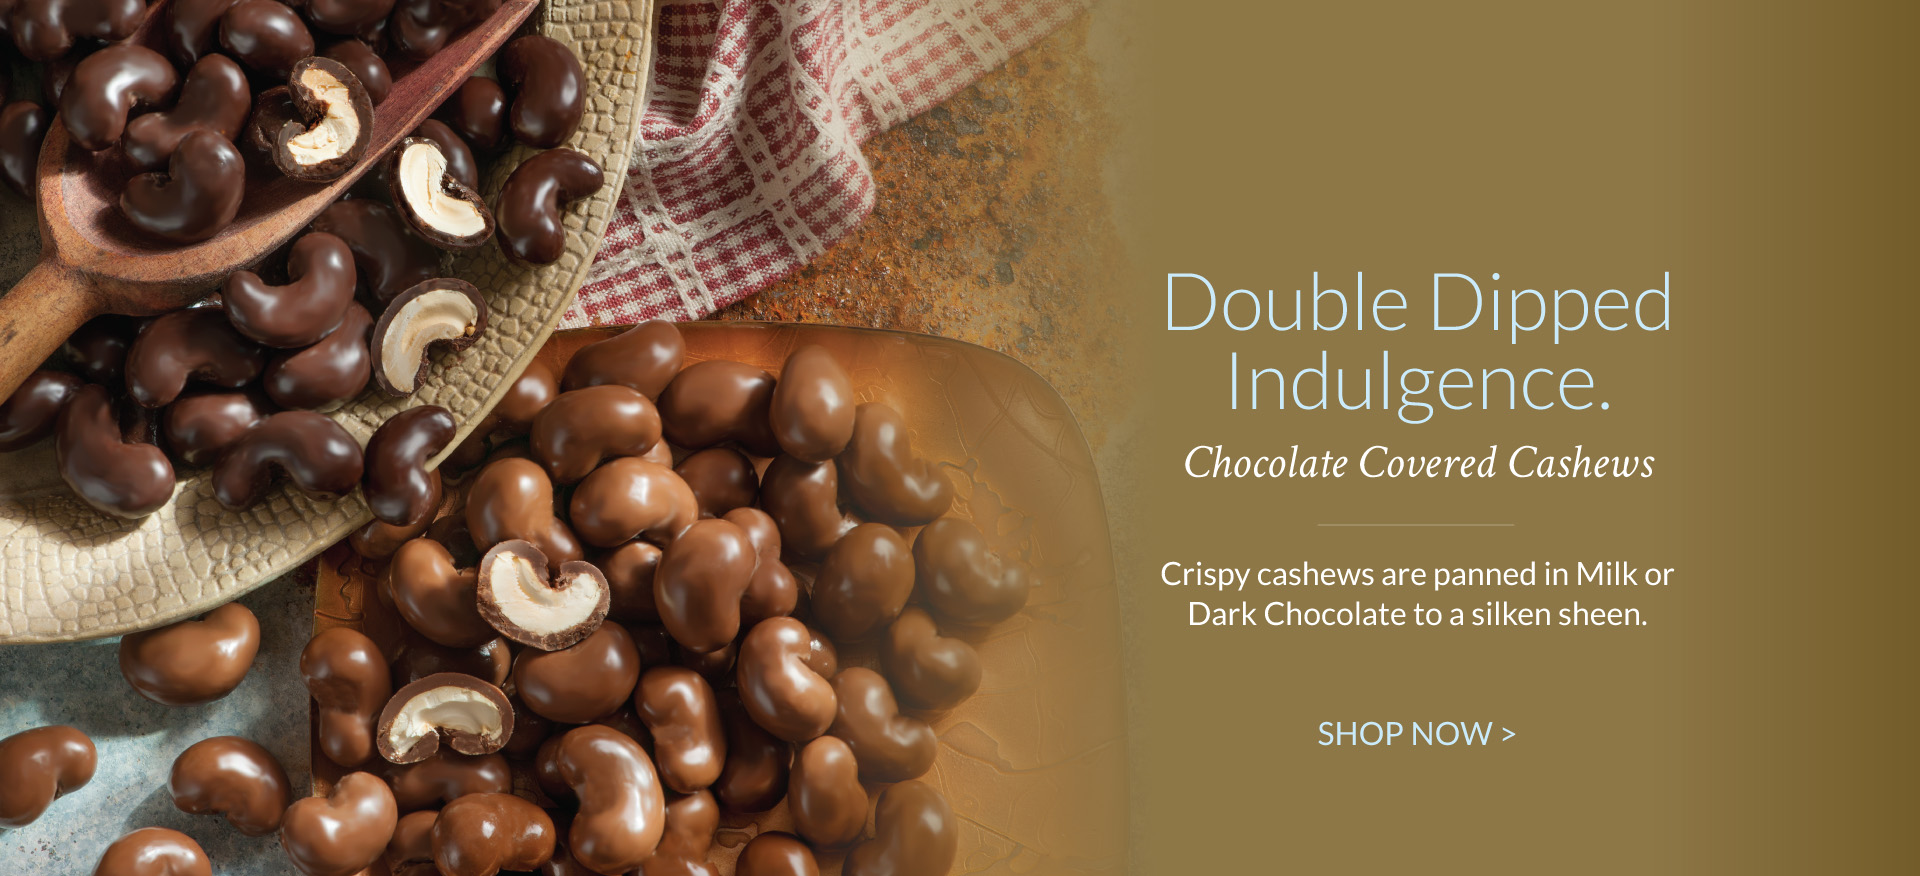 Chocolate Covered Cashews - The Peanut Shop of Williamsburg